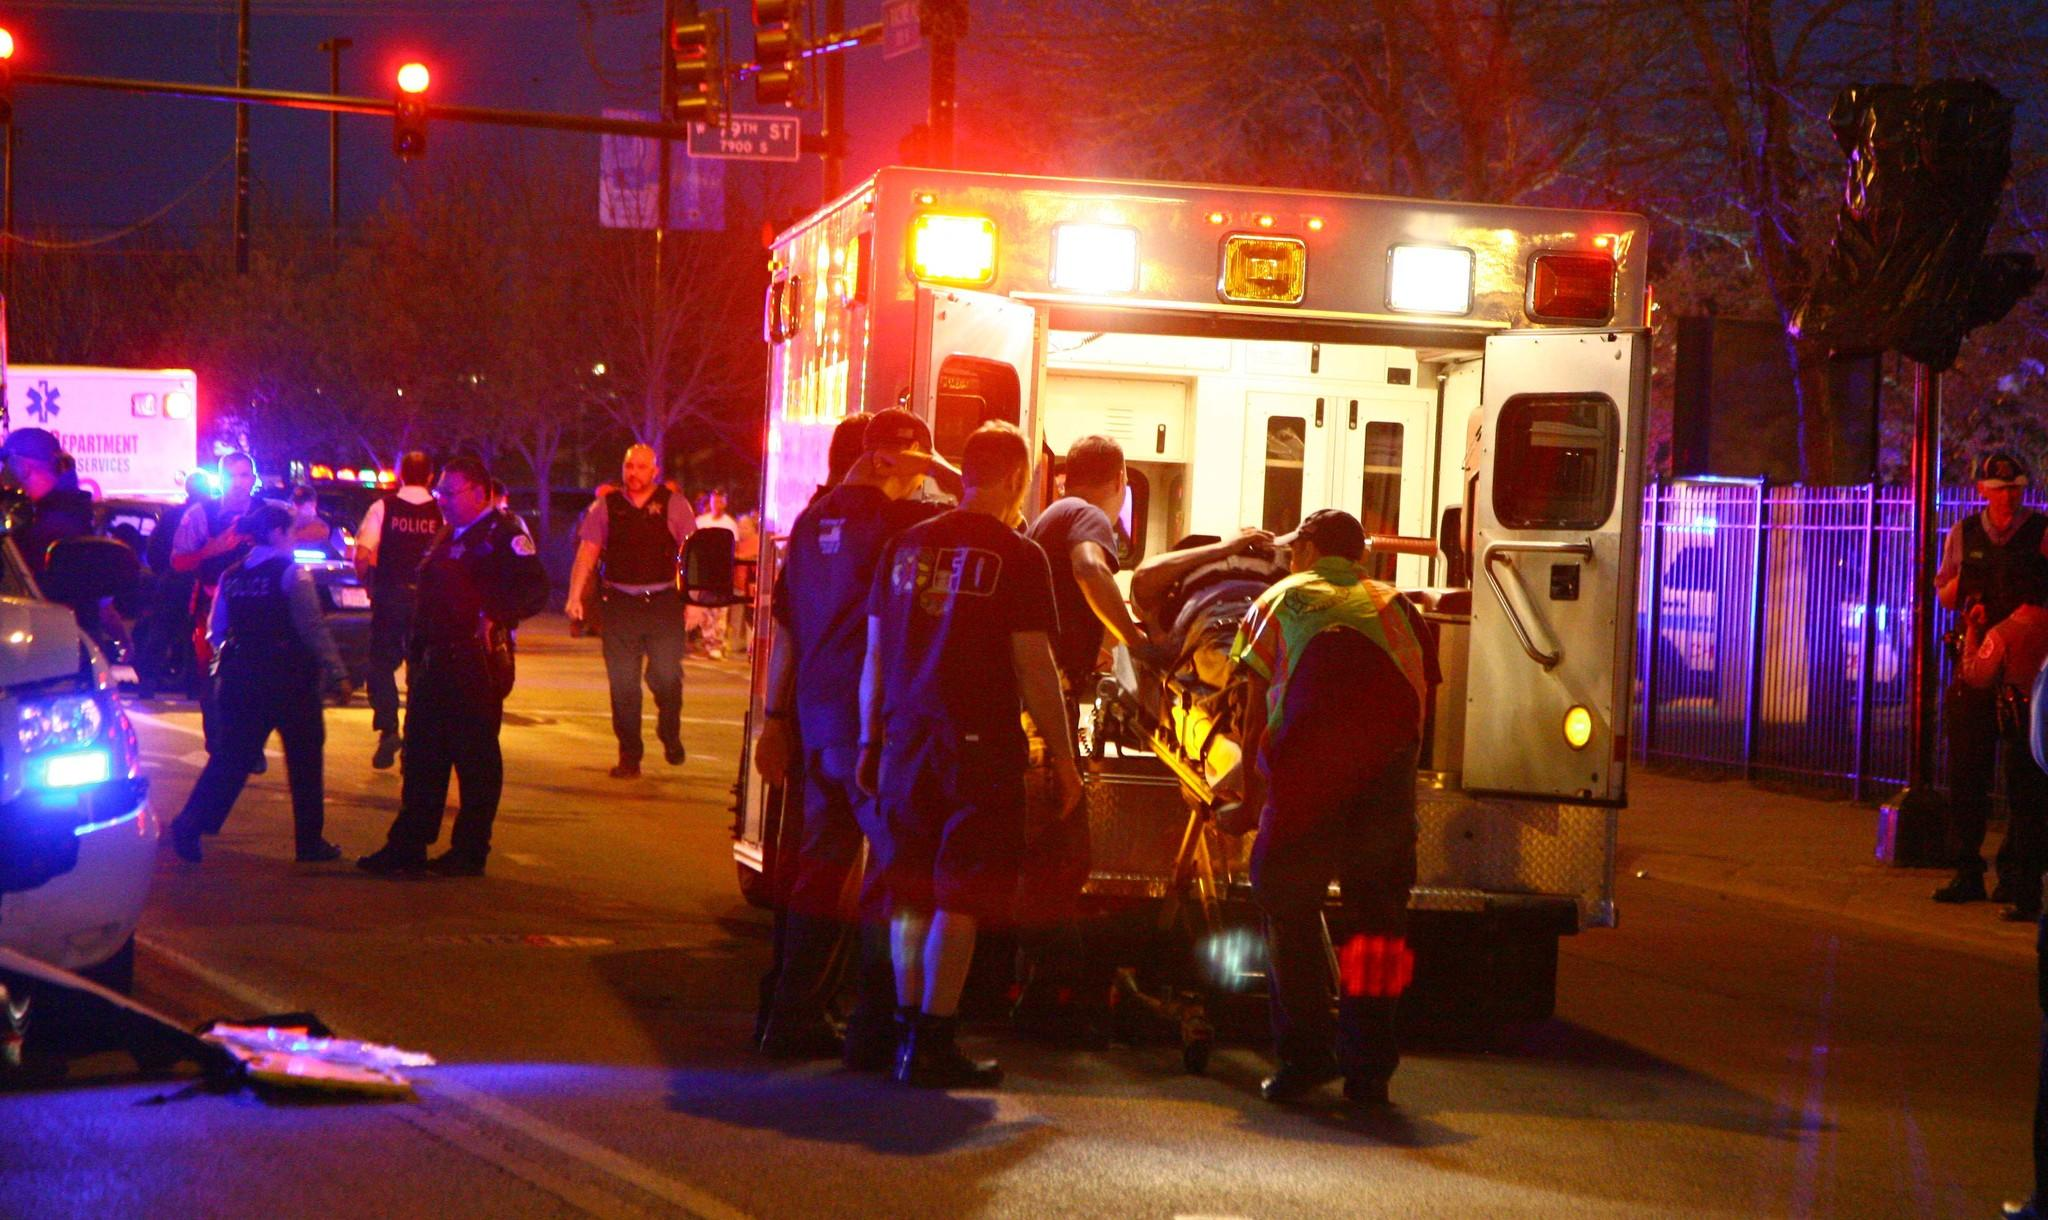 Chicago Fire Department medical personnel prepare an injured Chicago police officer to be taken by ambulance to a hospital following an accident at 79th and Racine involving two Chicago police vehicles and four police officers.